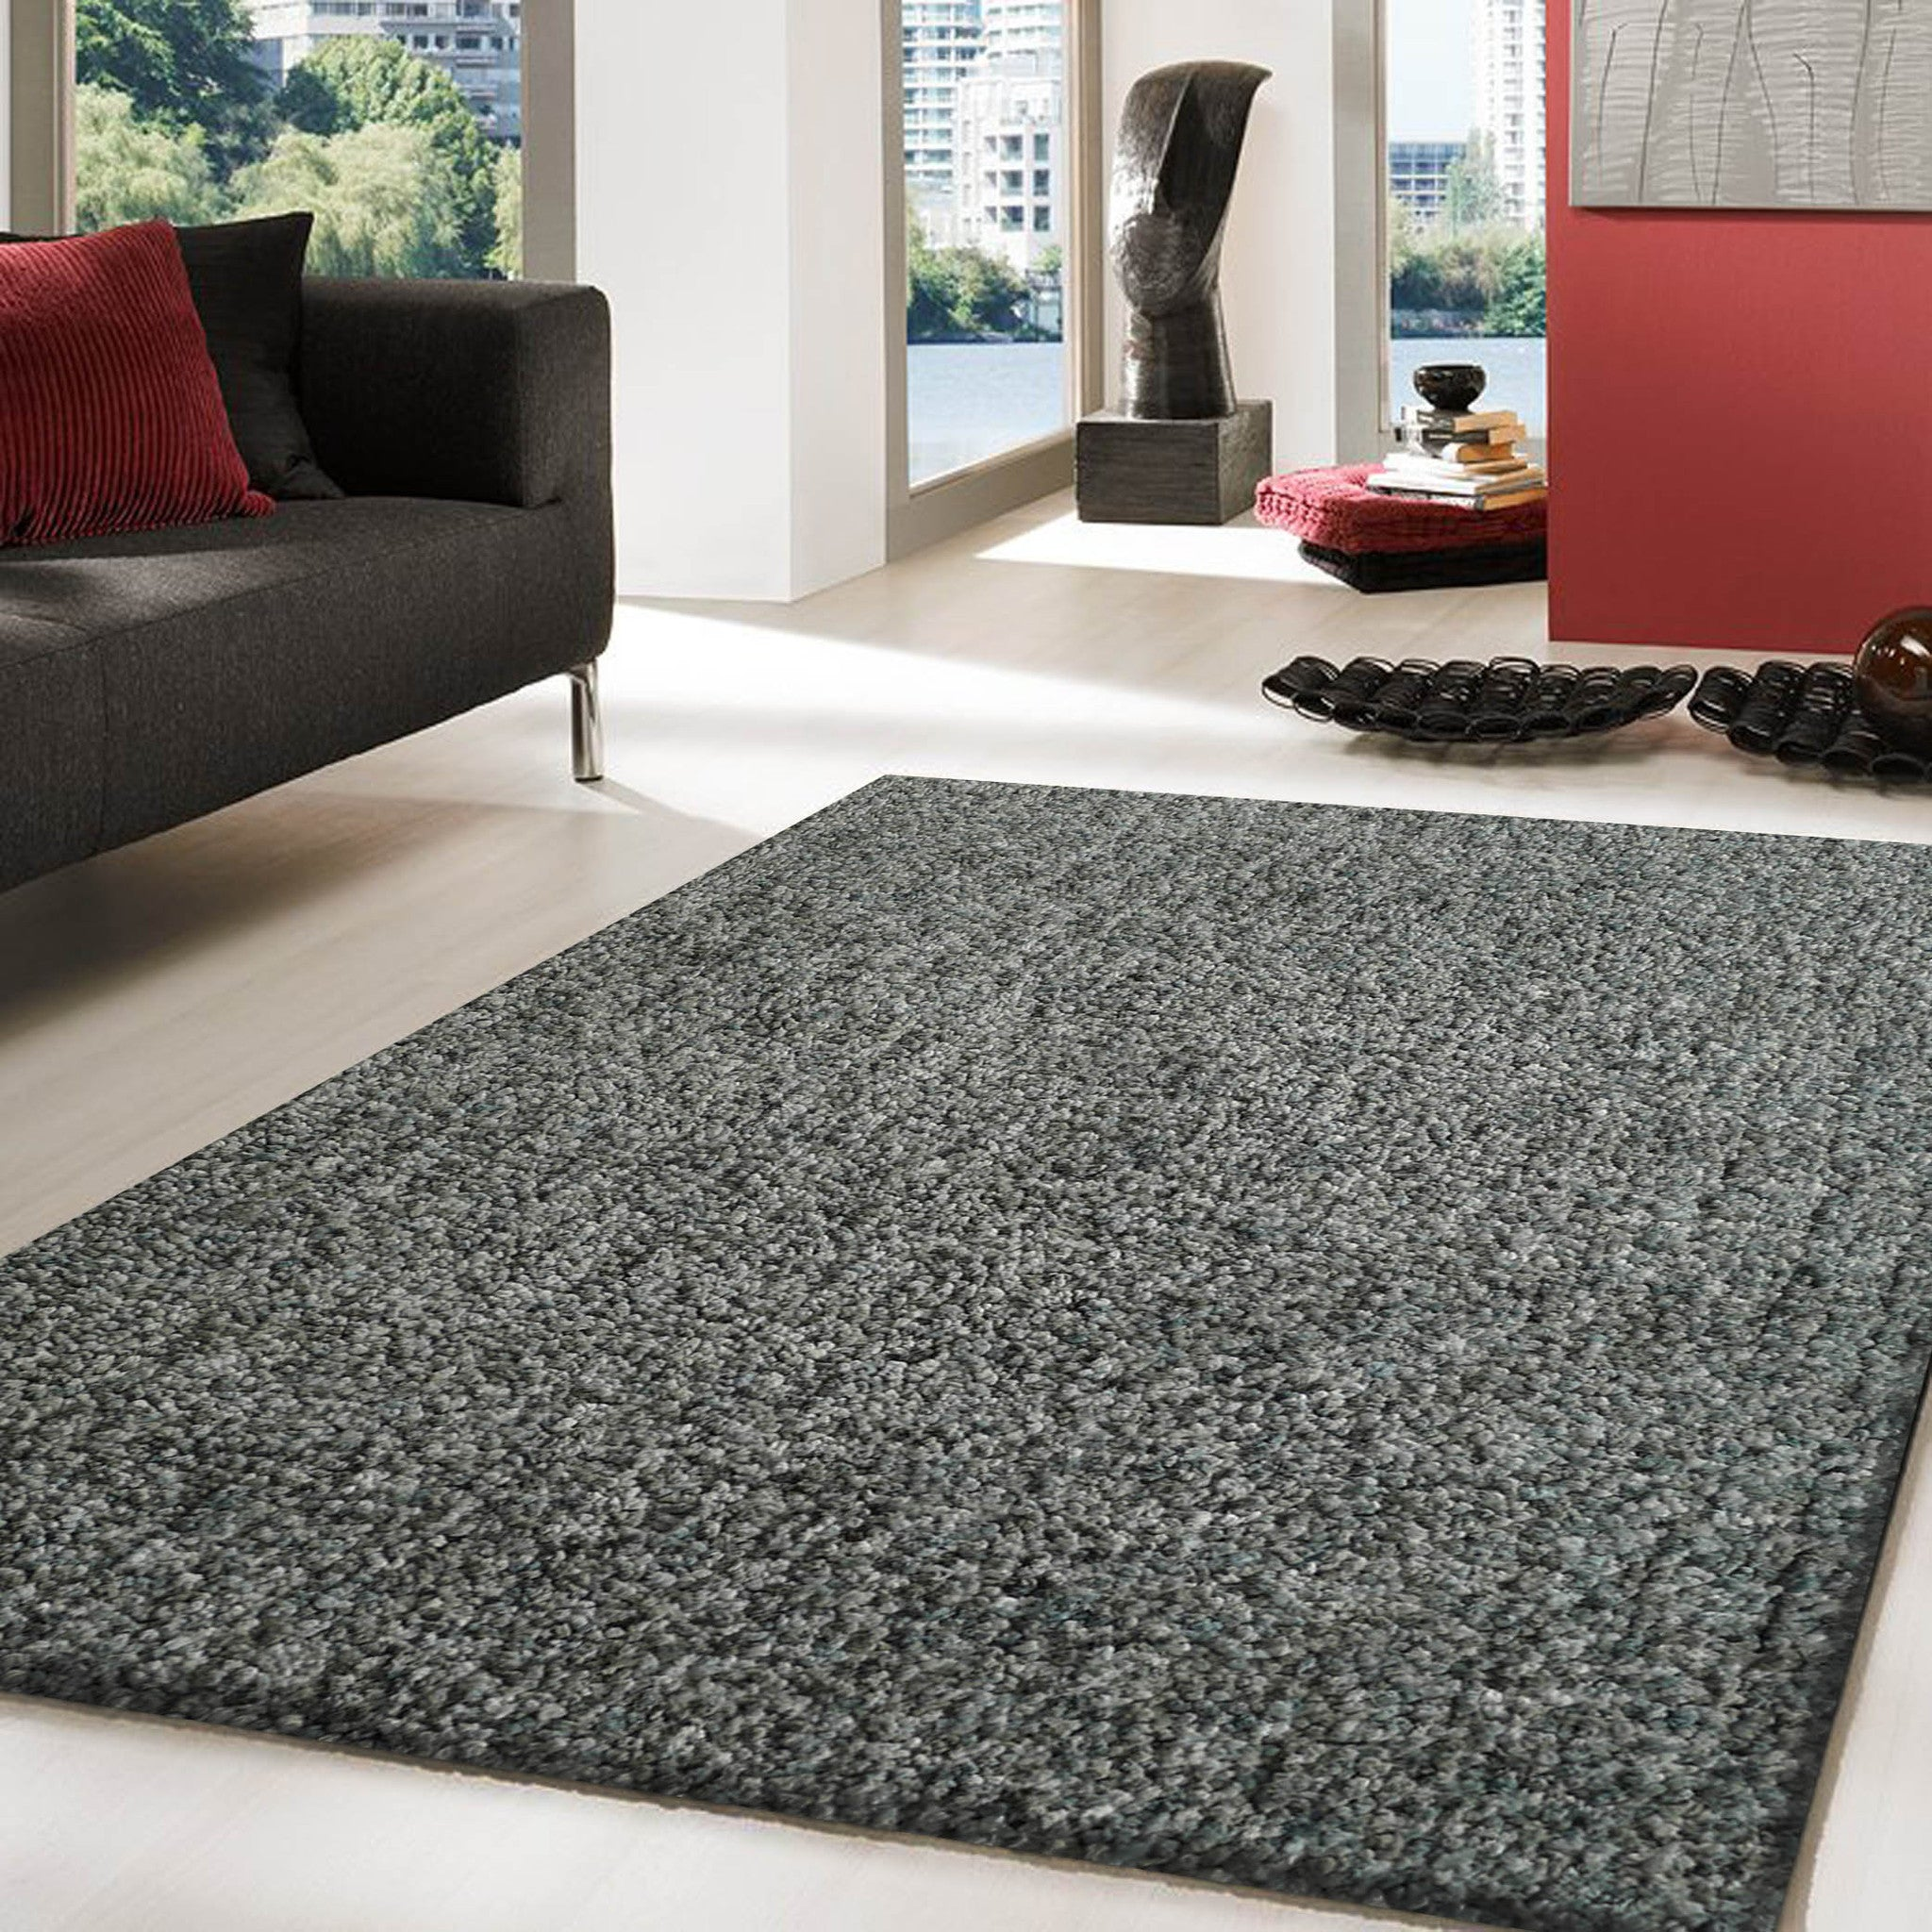 Thick Area Rugs